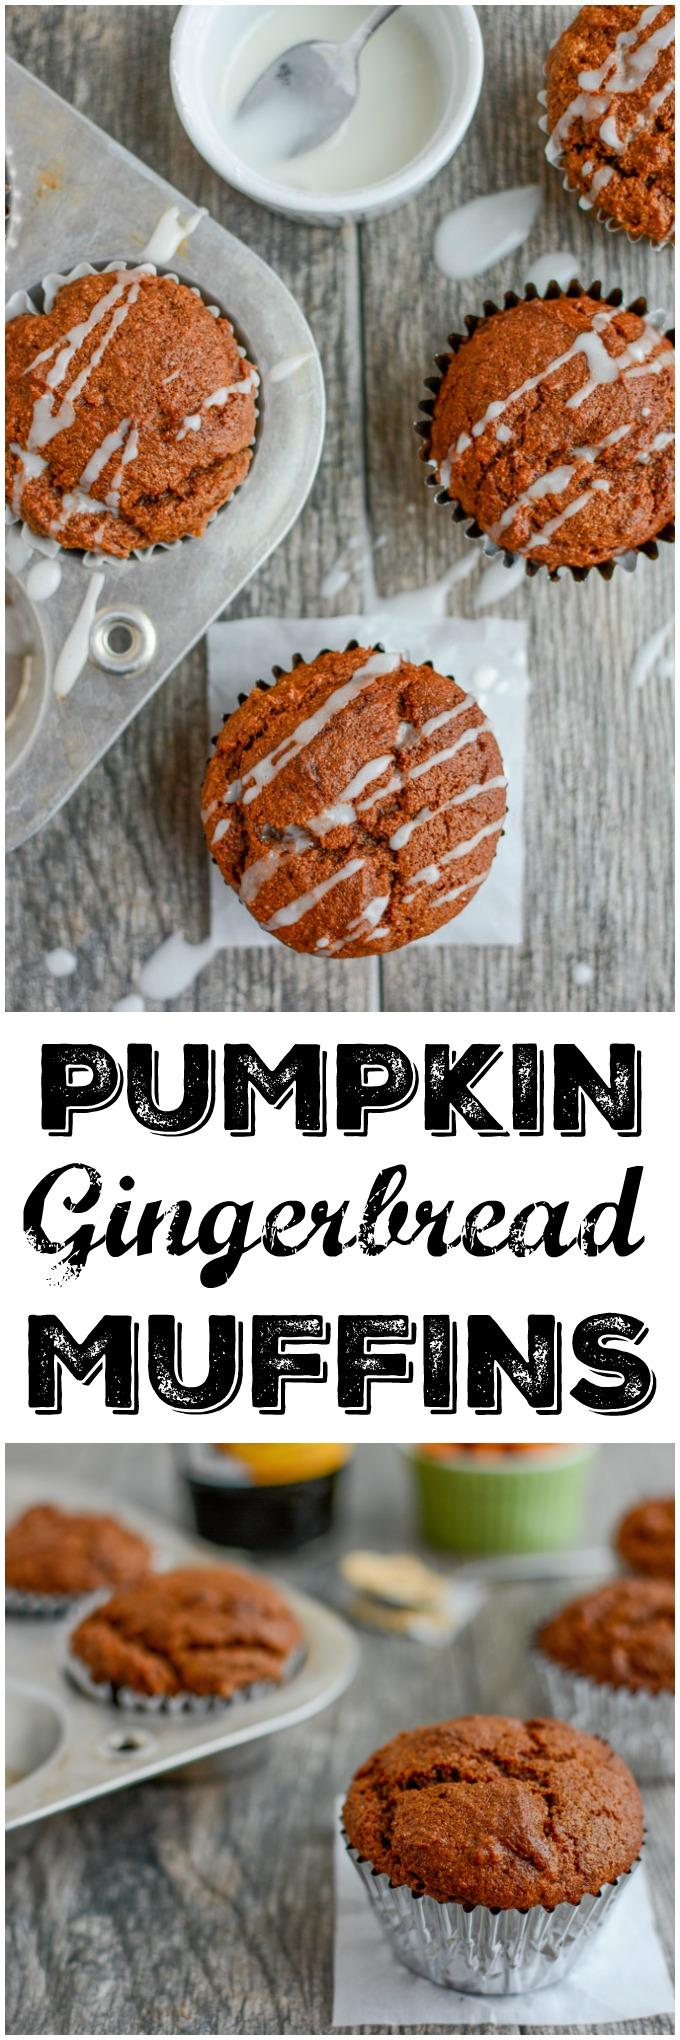 These Pumpkin Gingerbread Muffins are bursting with flavor, deliciously moist and they make a great mid-morning snack! They're the perfect way to transition from fall to winter.